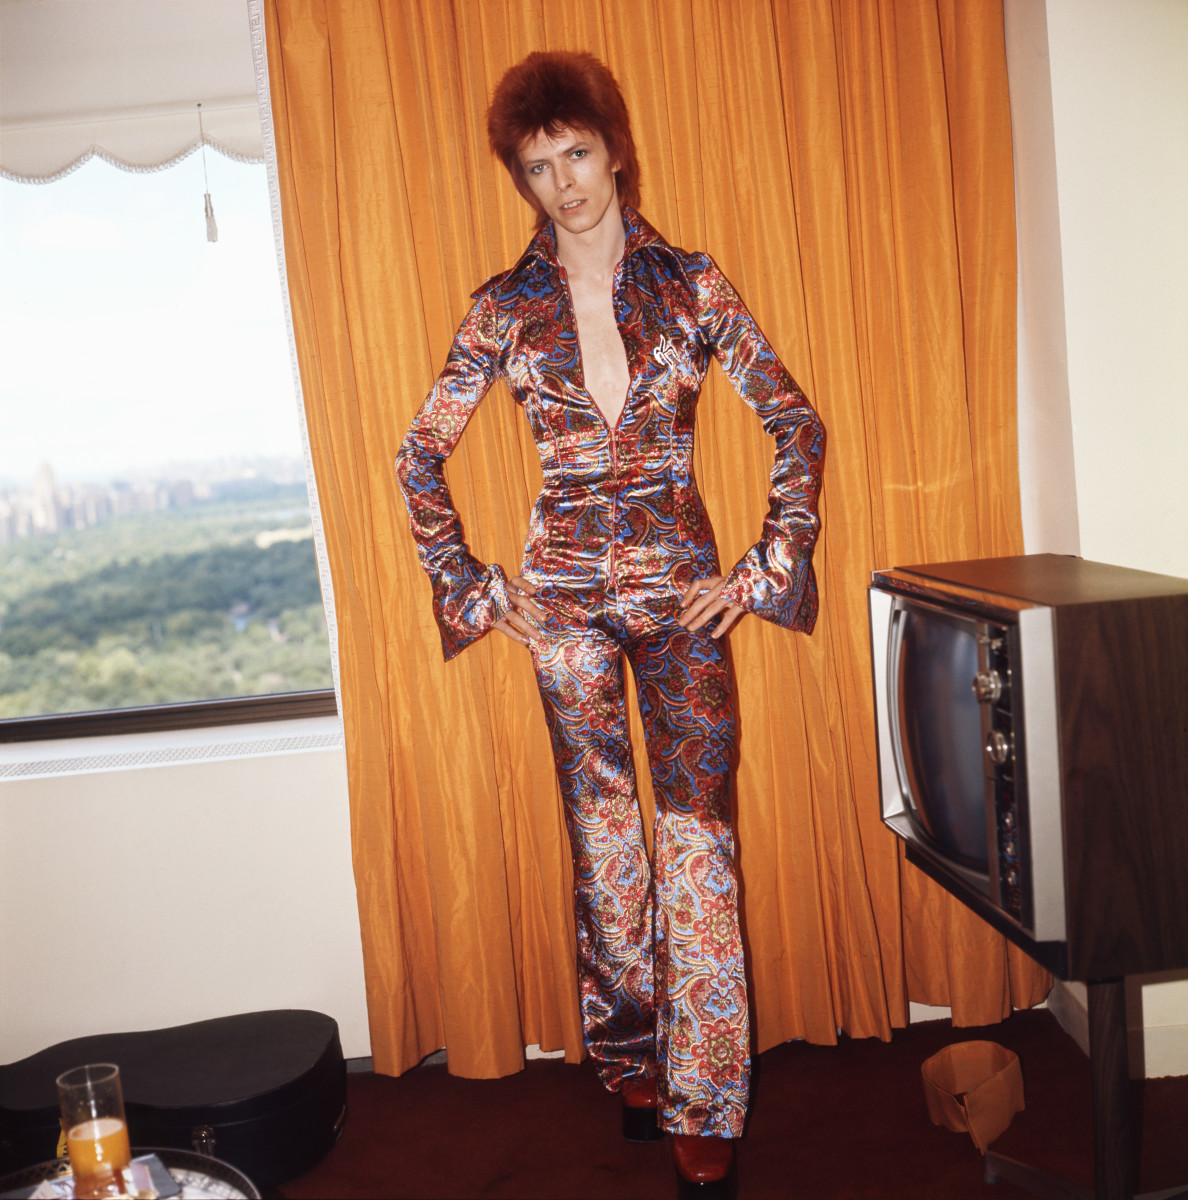 David Bowie poses for a portrait dressed as Ziggy Stardust in a hotel room in New York City, 1973